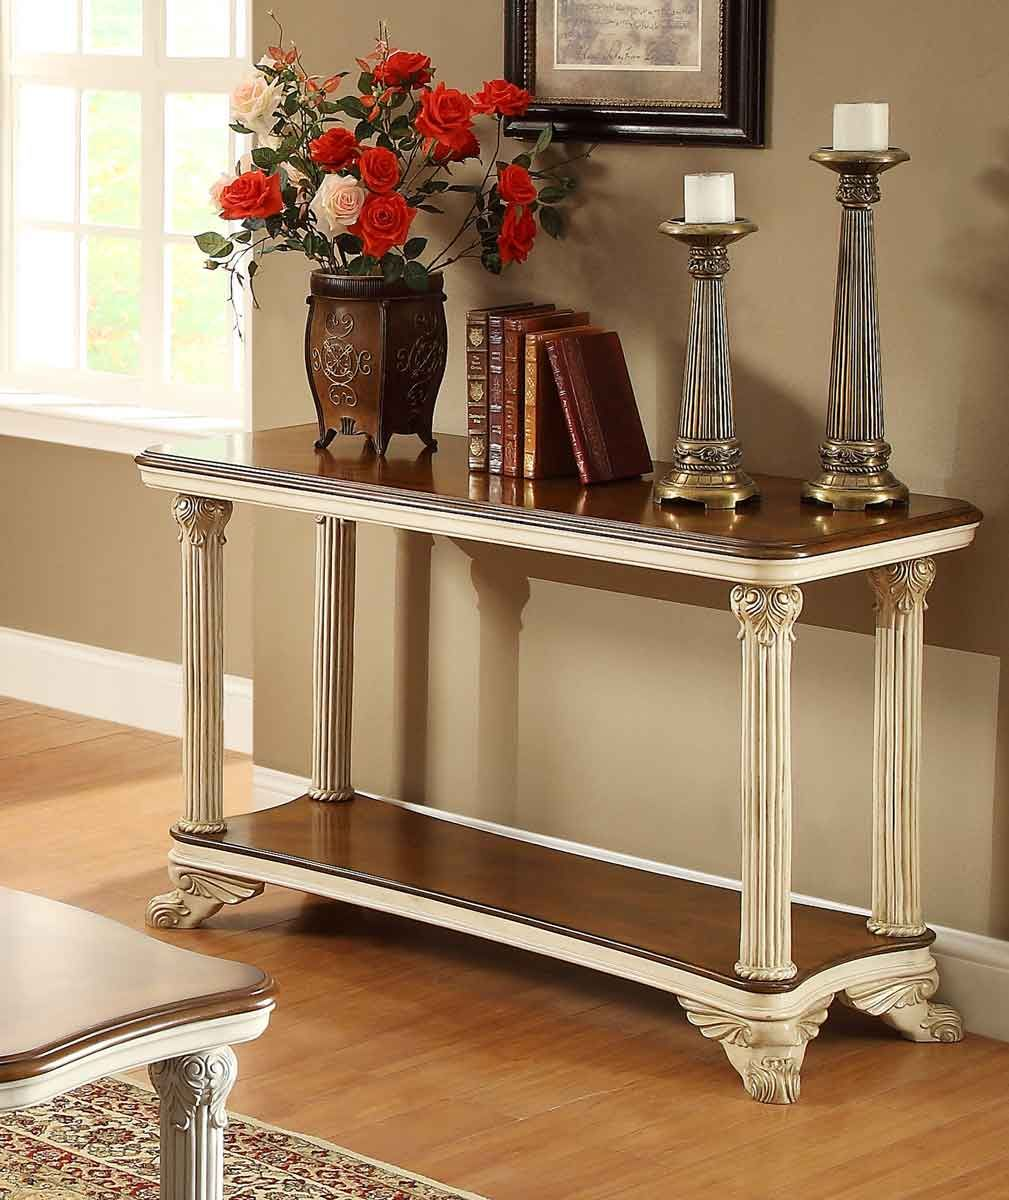 Homelegance casanova ii sofa table antique white price 45400 homelegance casanova ii sofa table antique white price 45400 traditional geotapseo Gallery